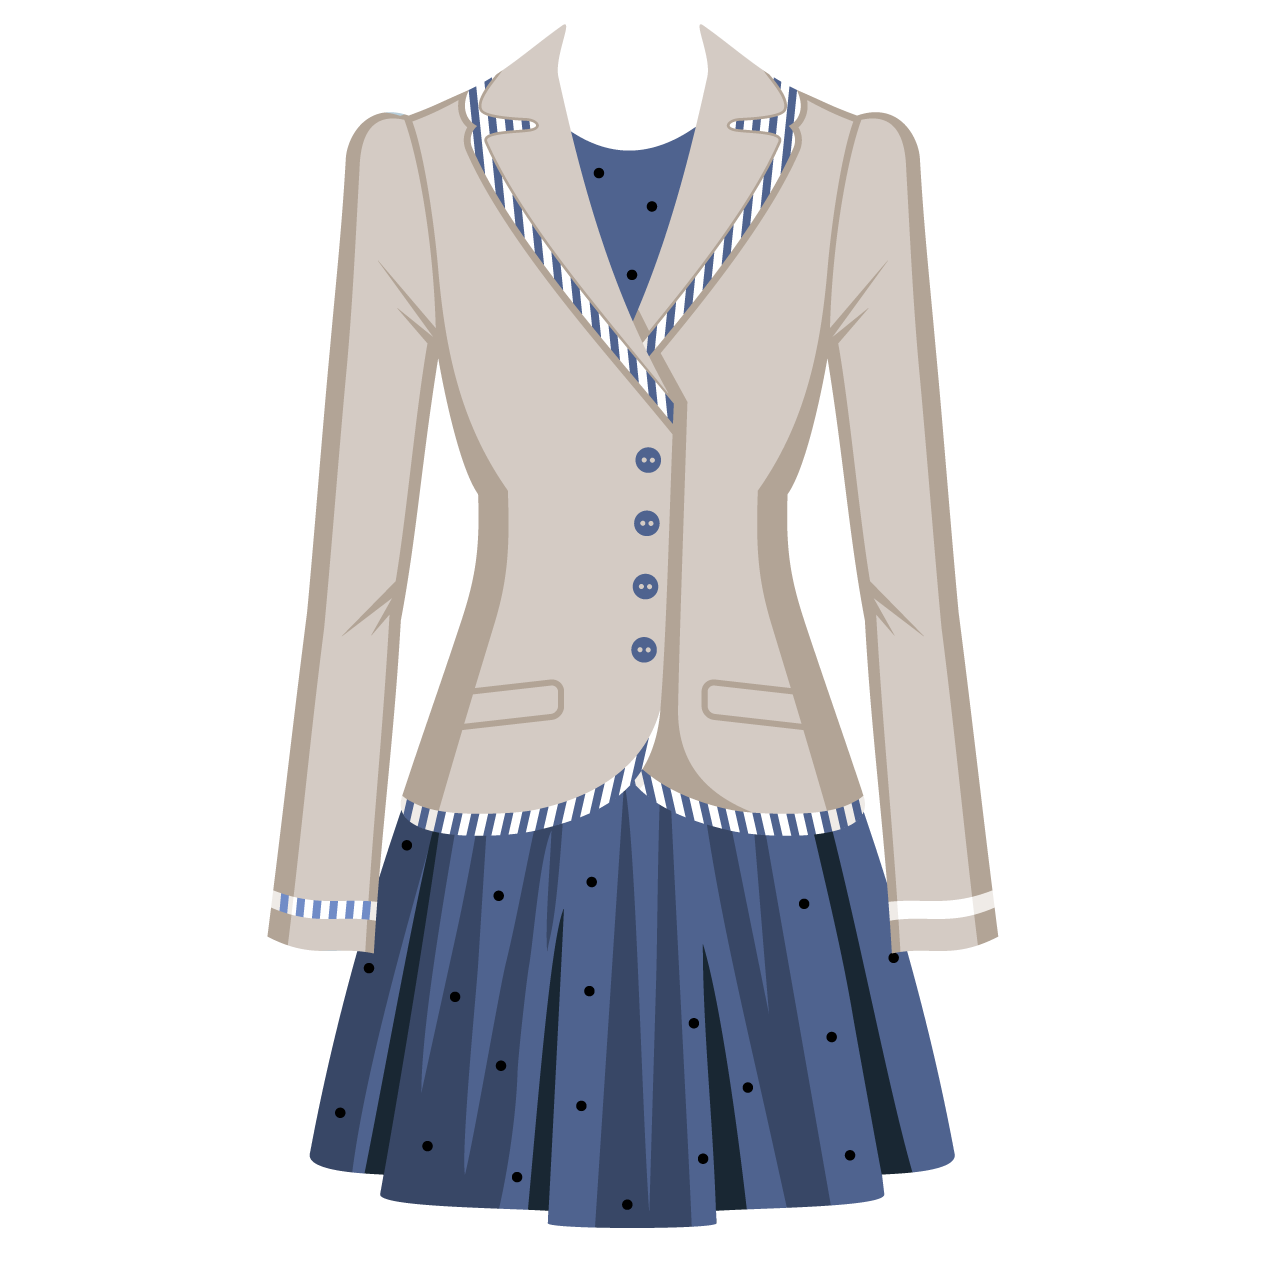 Suit stock photography fashion. Clipart clothes women's clothing